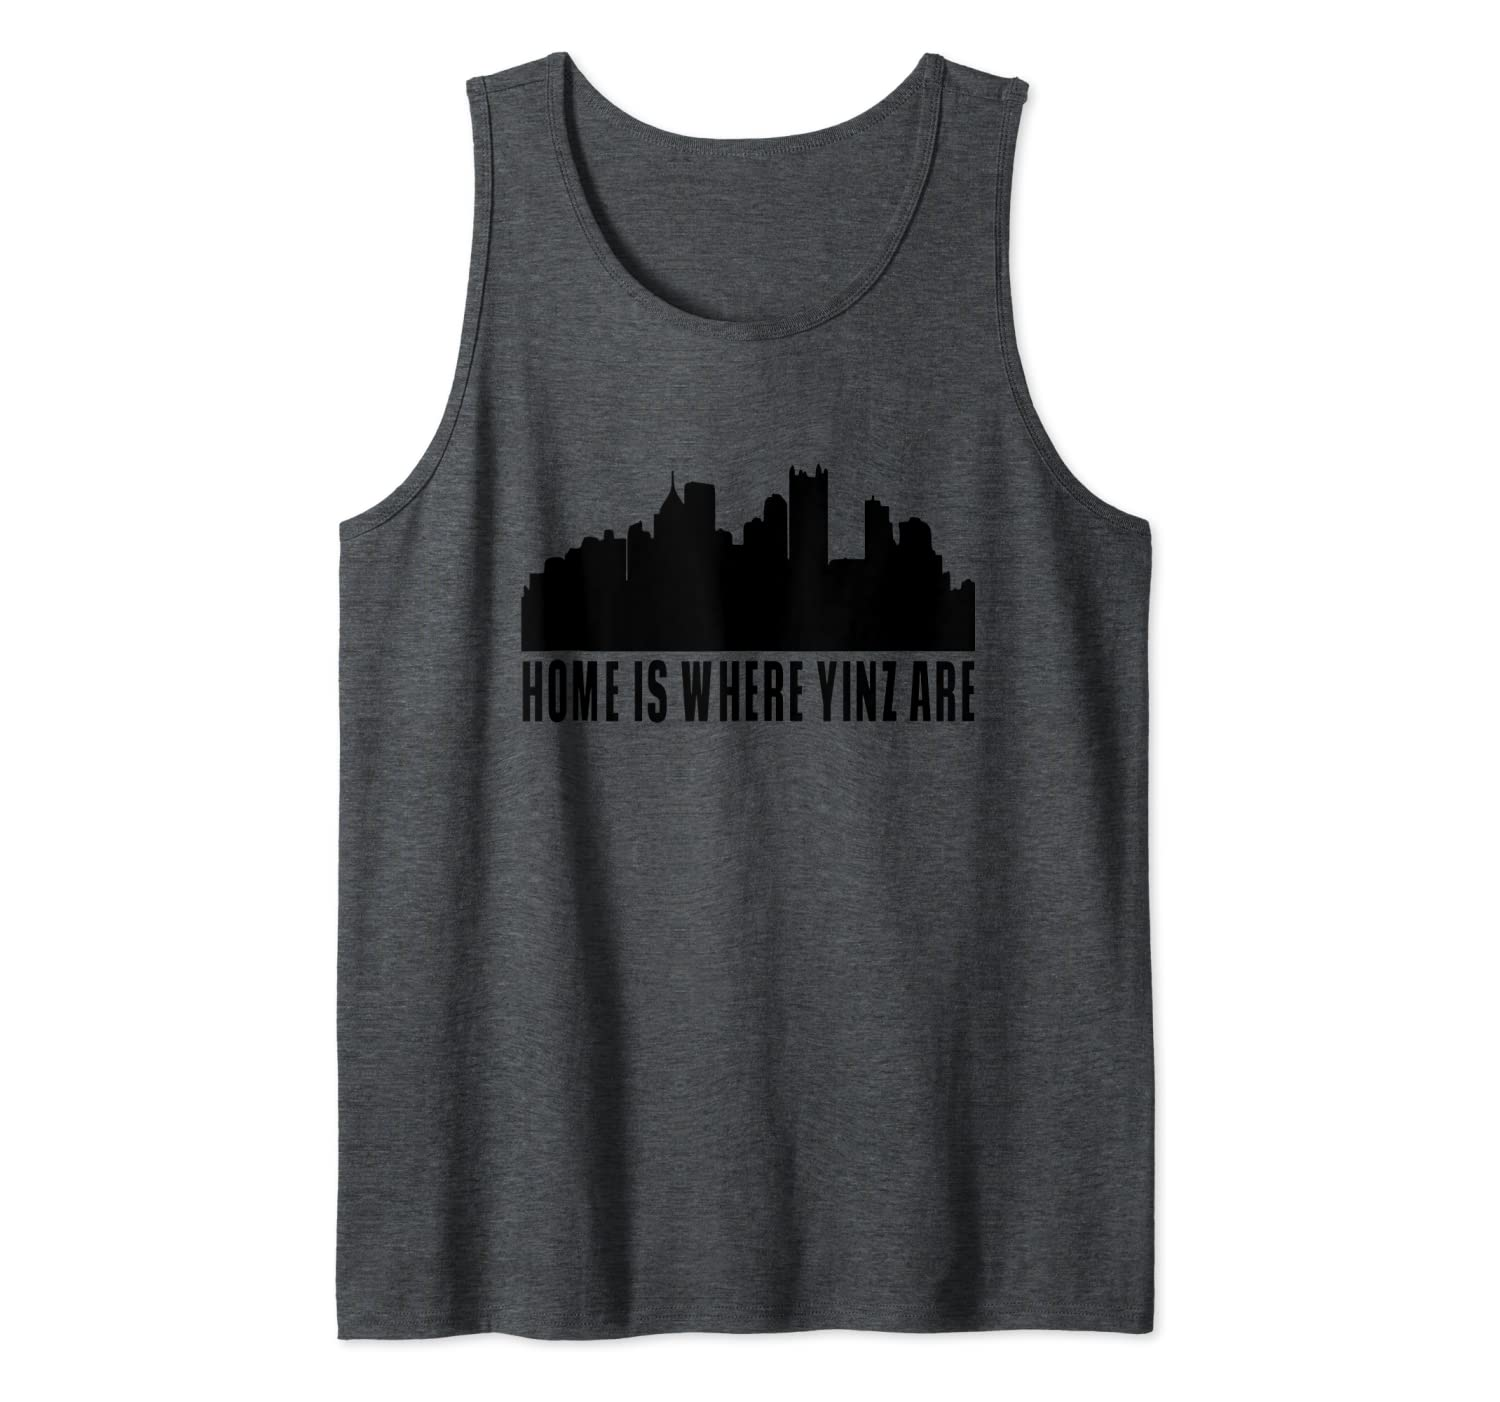 Pittsburgh Gifts - Home is where yinz are Tank Top